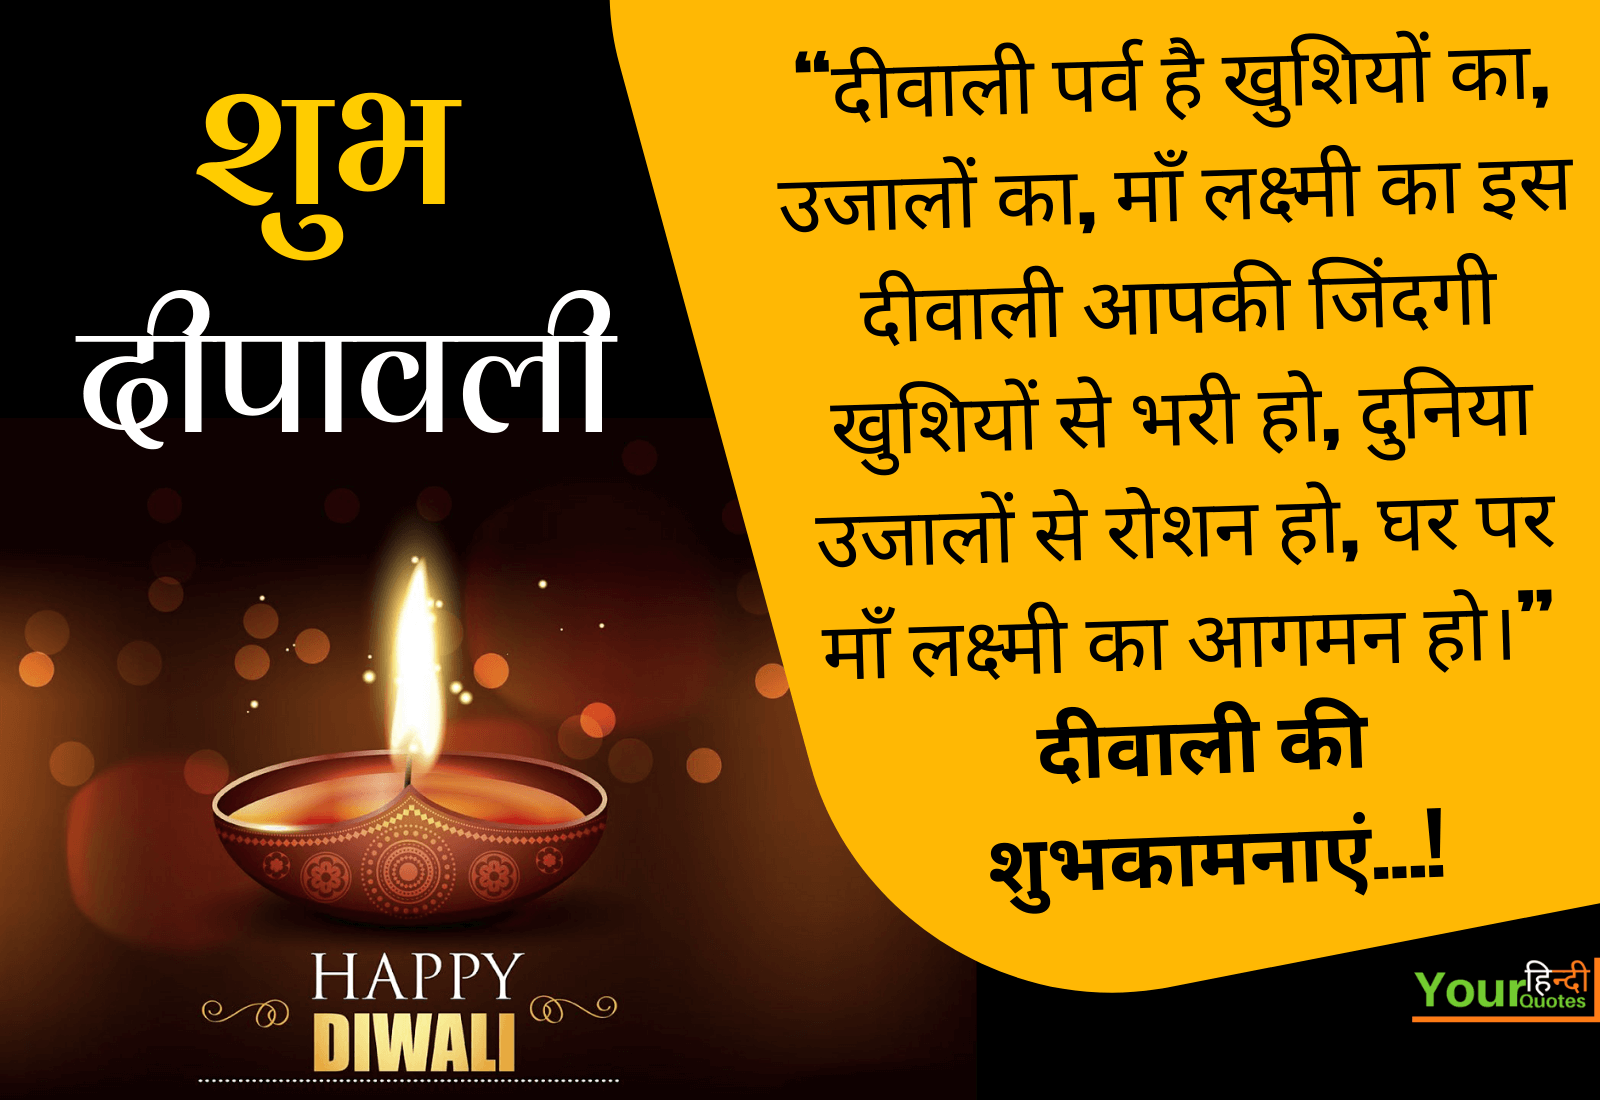 Happy Diwali Hindi Quotes Image